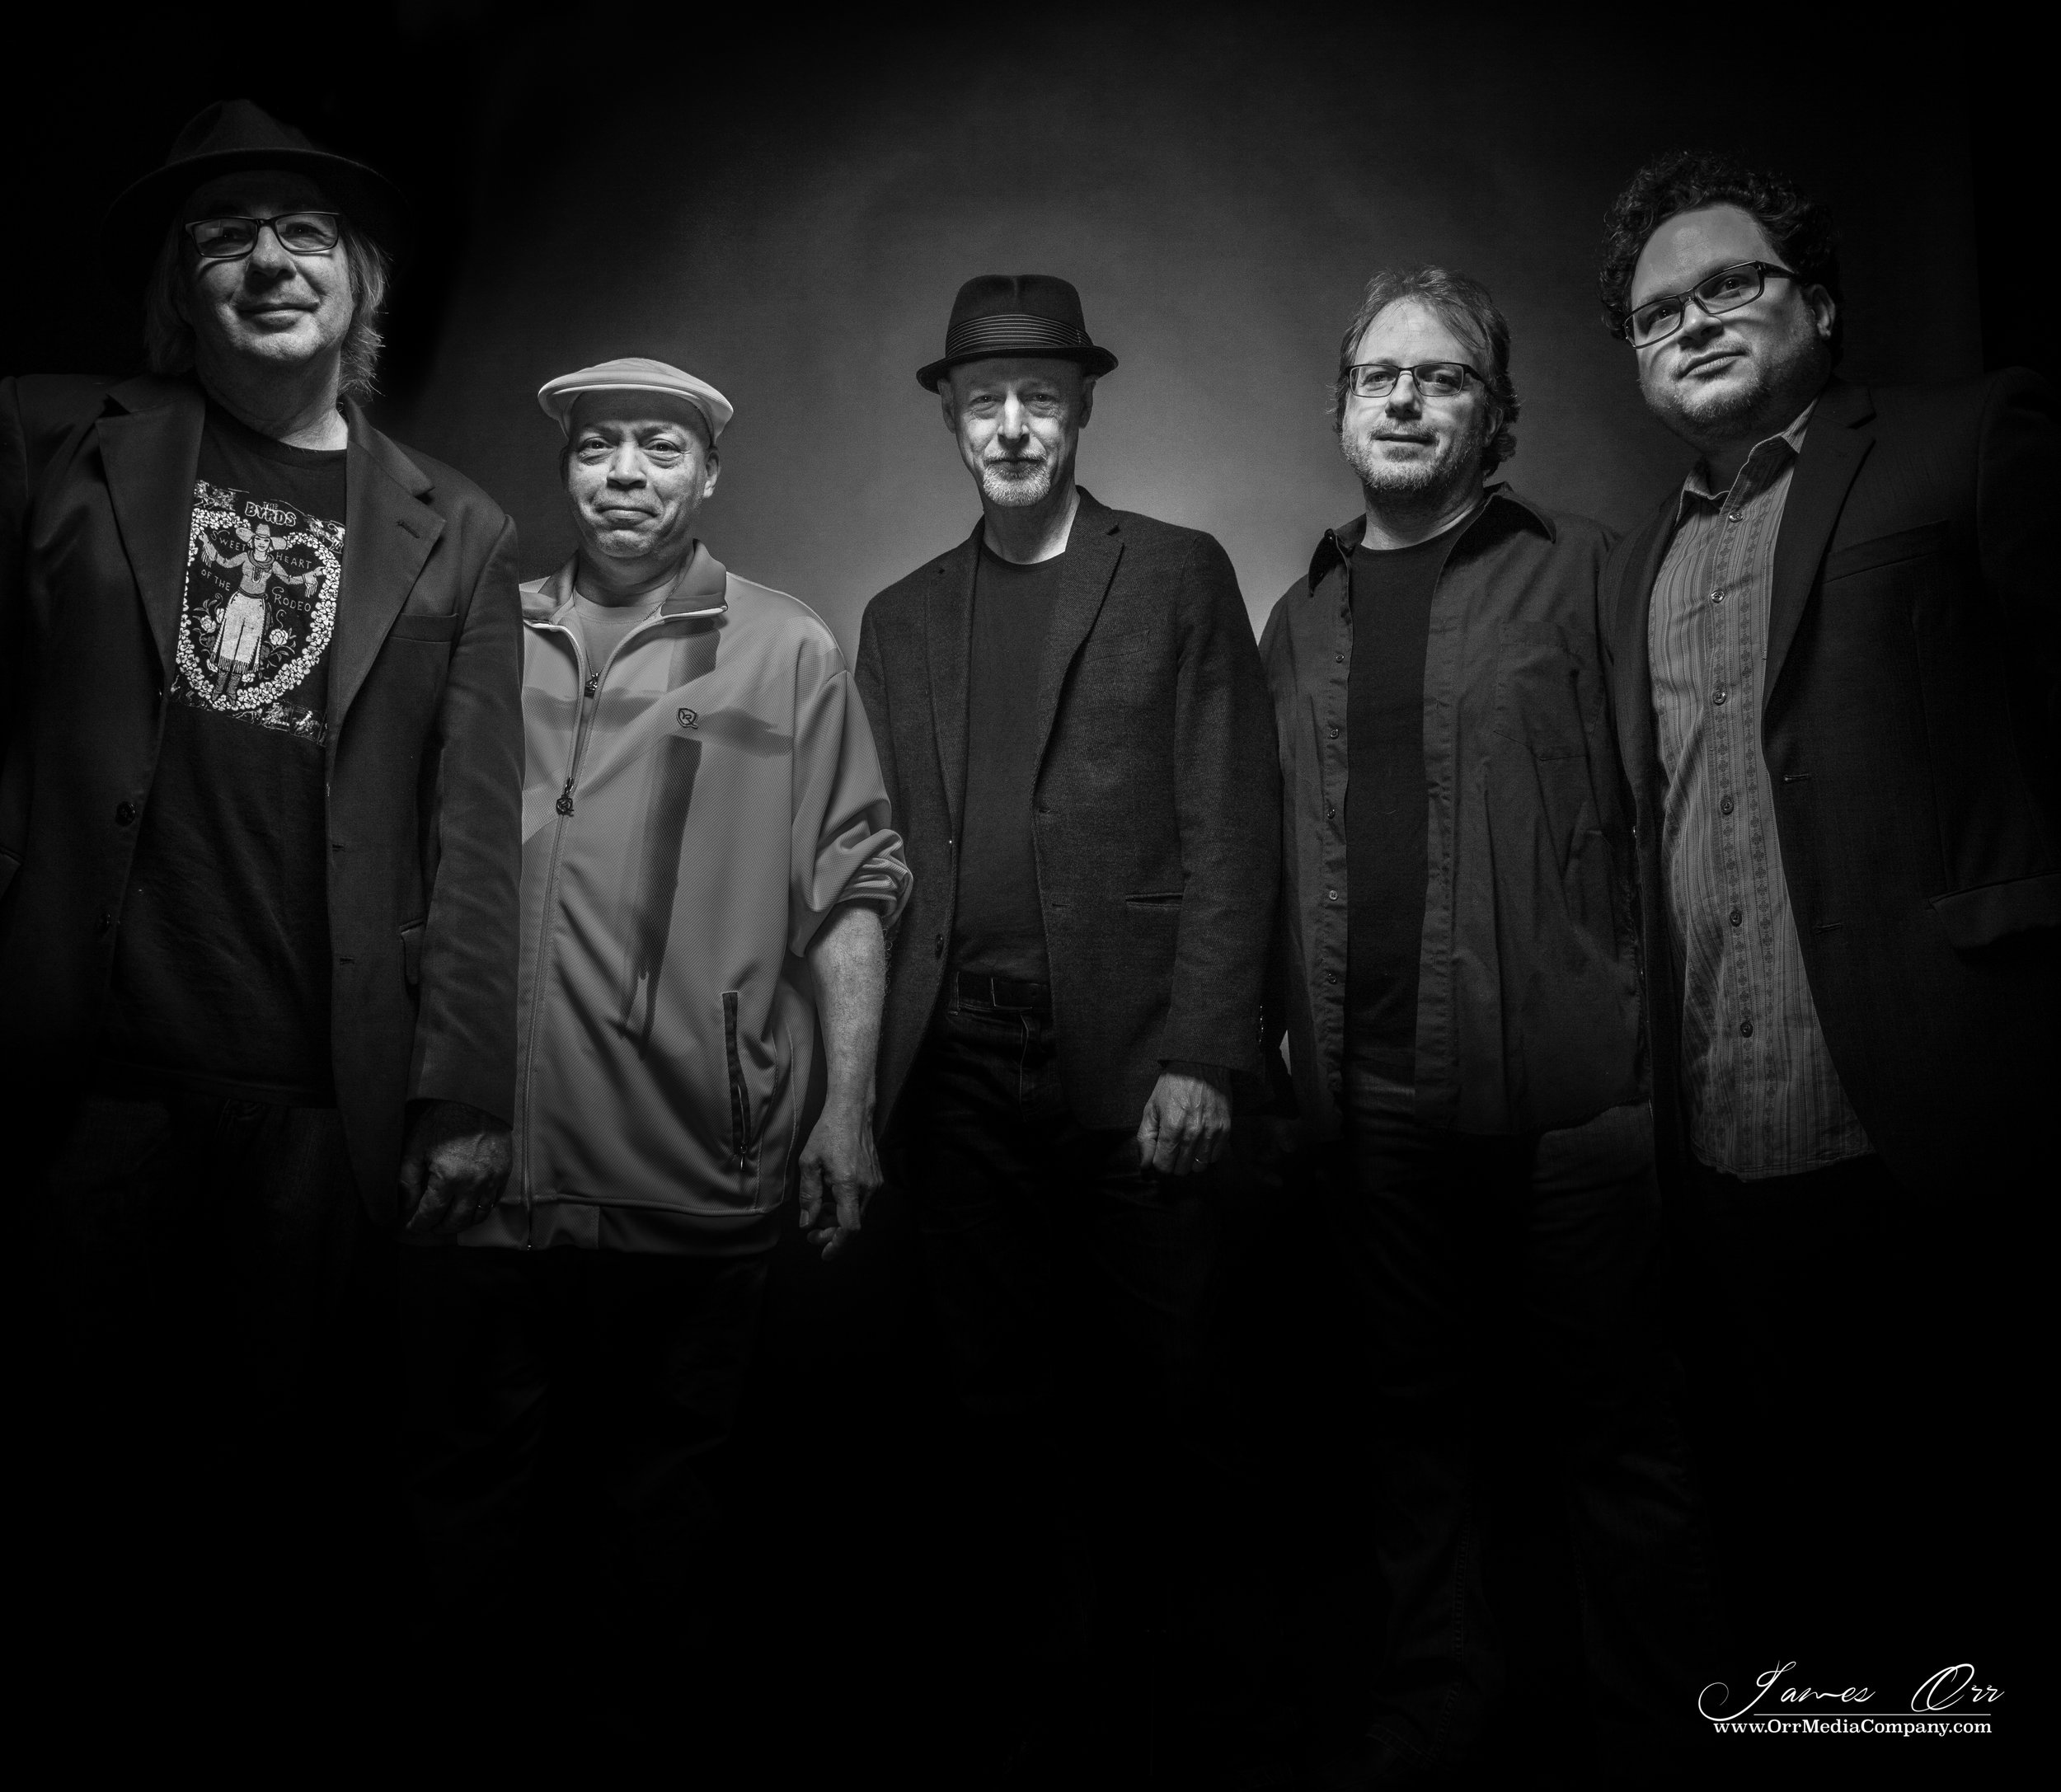 L to R: Mike Kelley, Carlos Valdez, Todd Nelson, Kyle Esposito & Manuel Quintana. Photo by James Orr